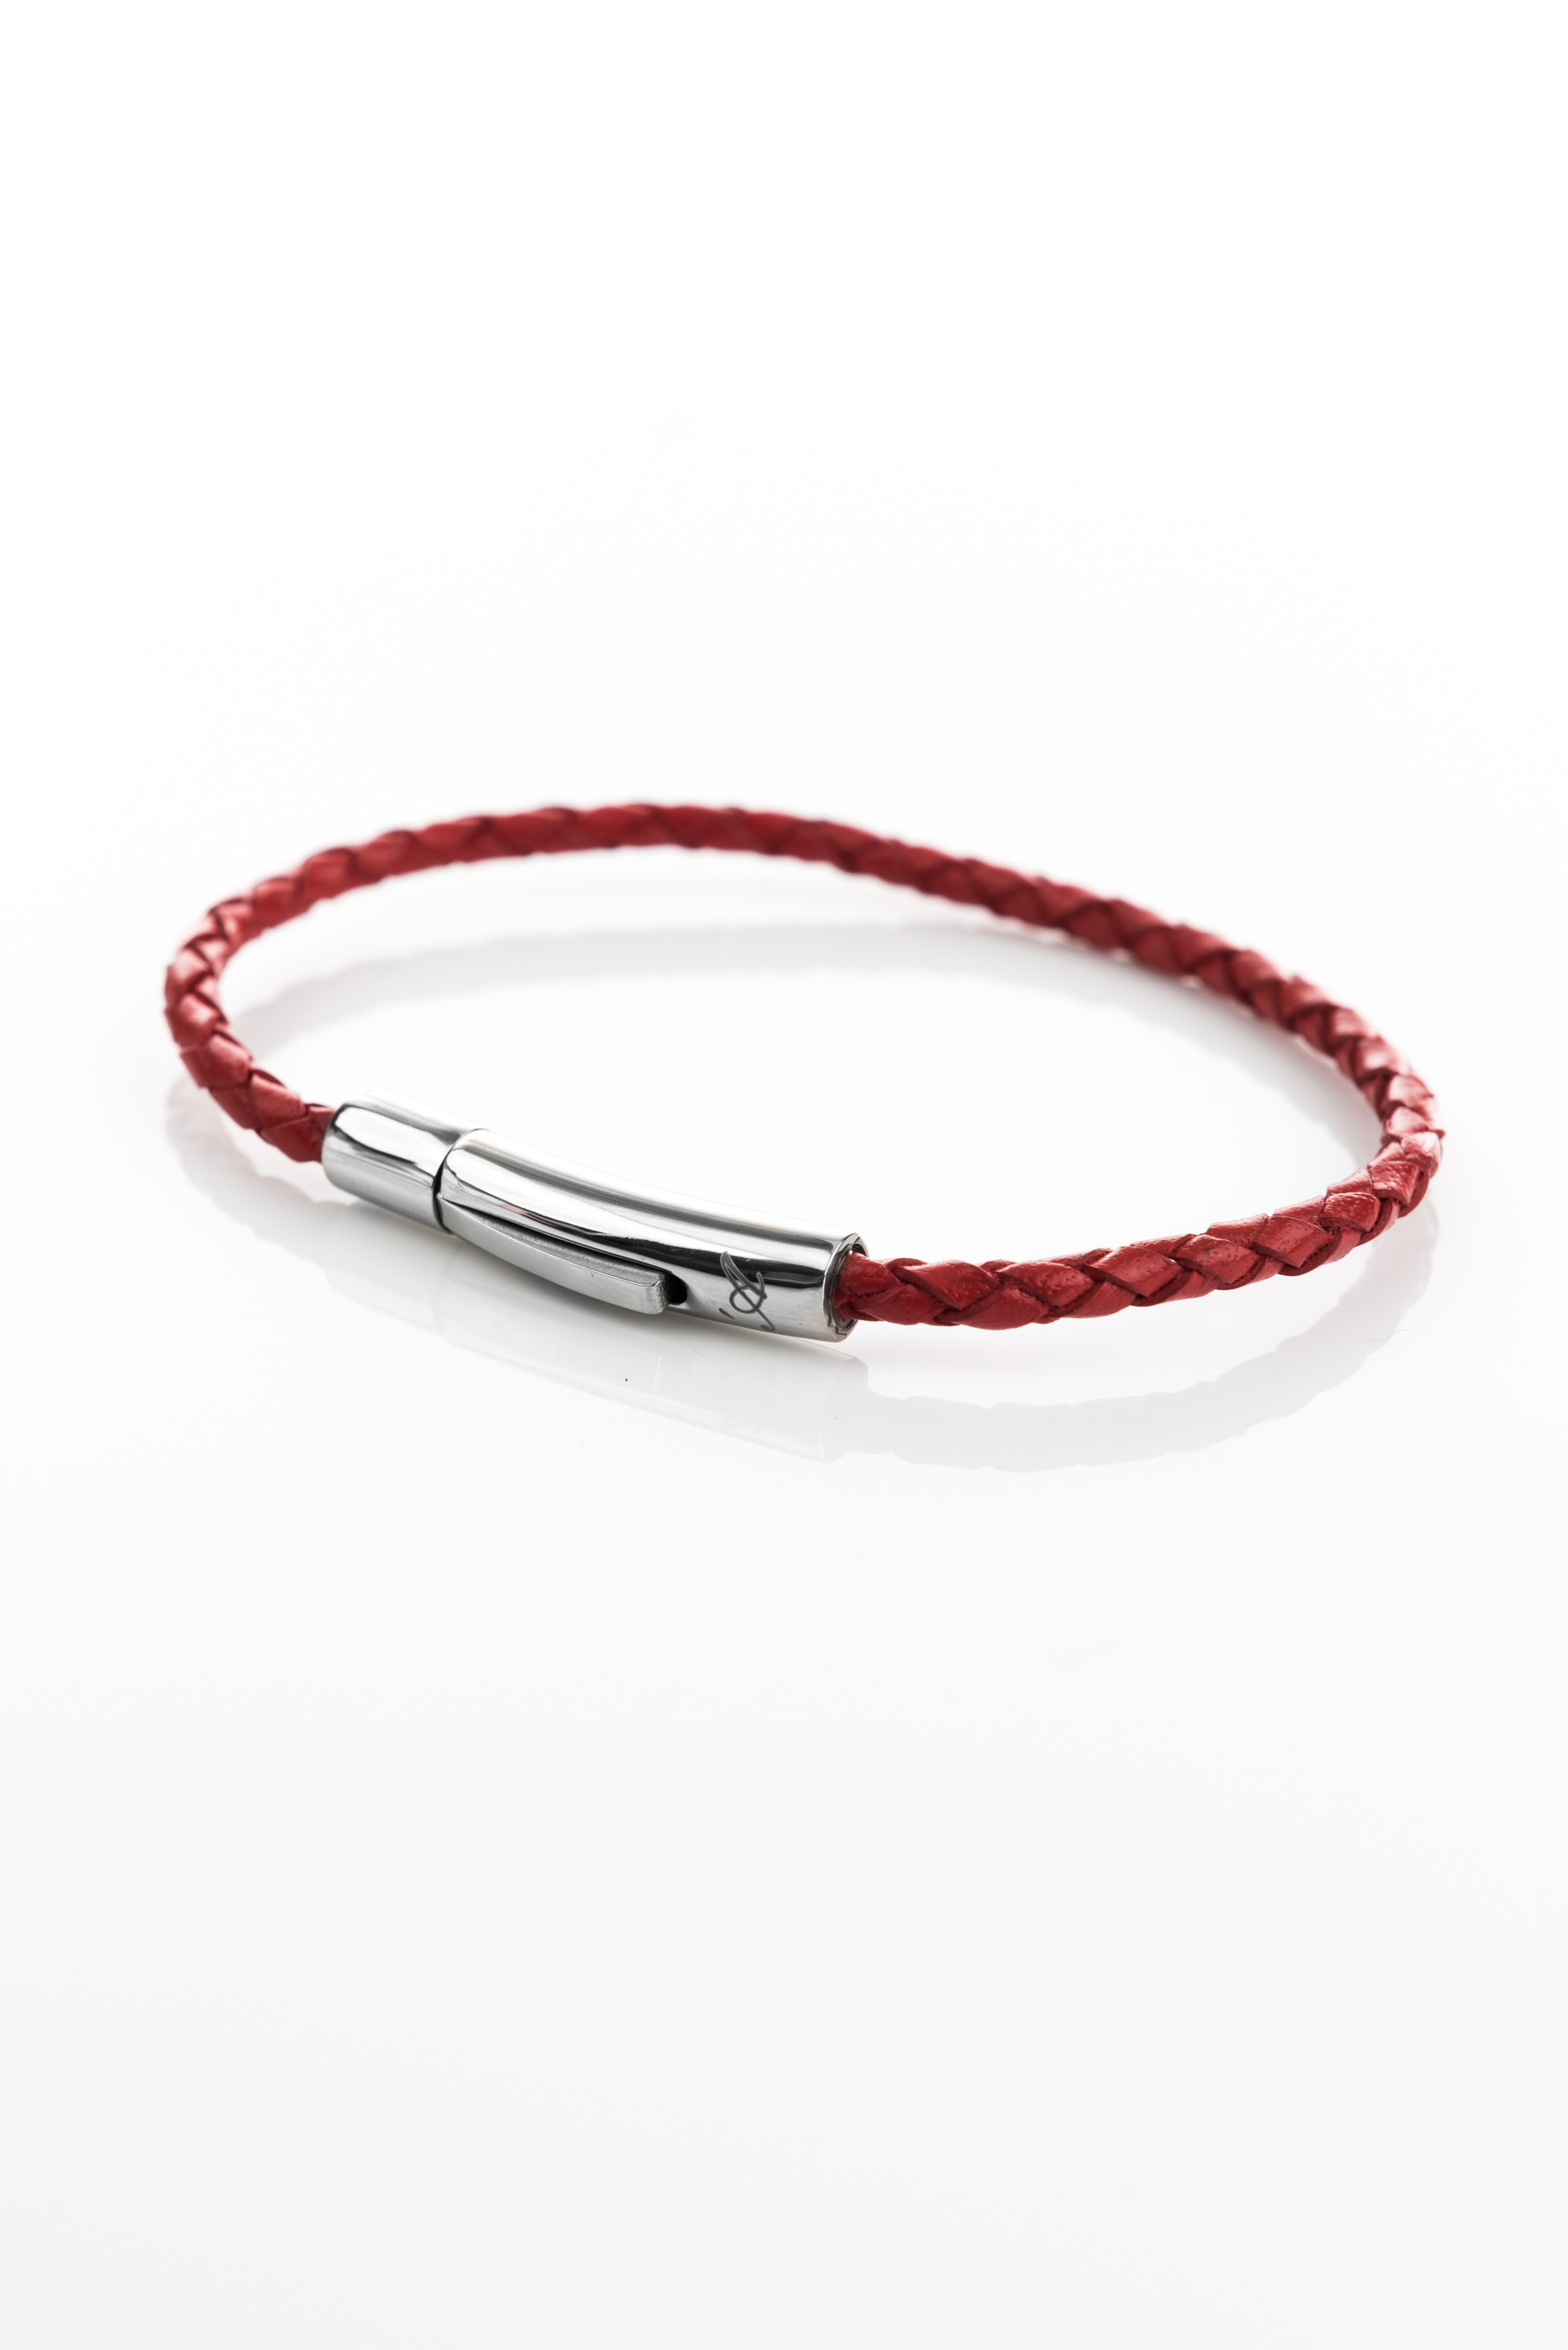 Vowen Red Leather Bracelet Skin L Avvocato